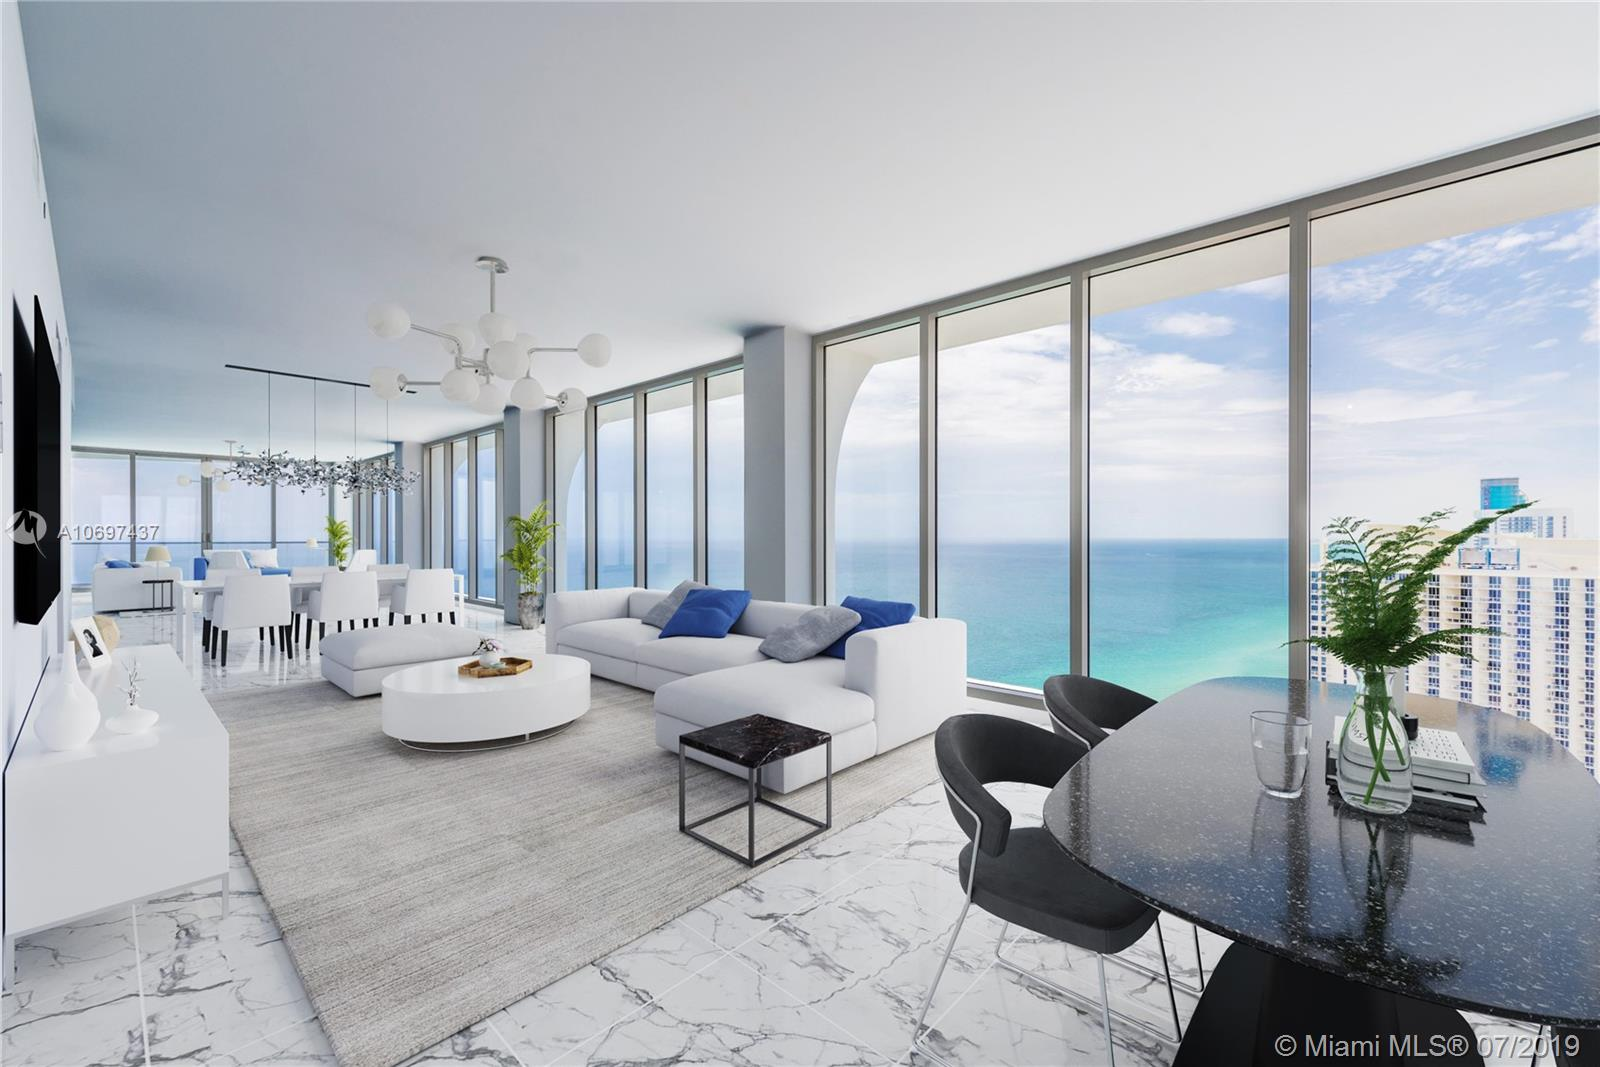 16901 Collins Ave, Unit #4101 Luxury Real Estate